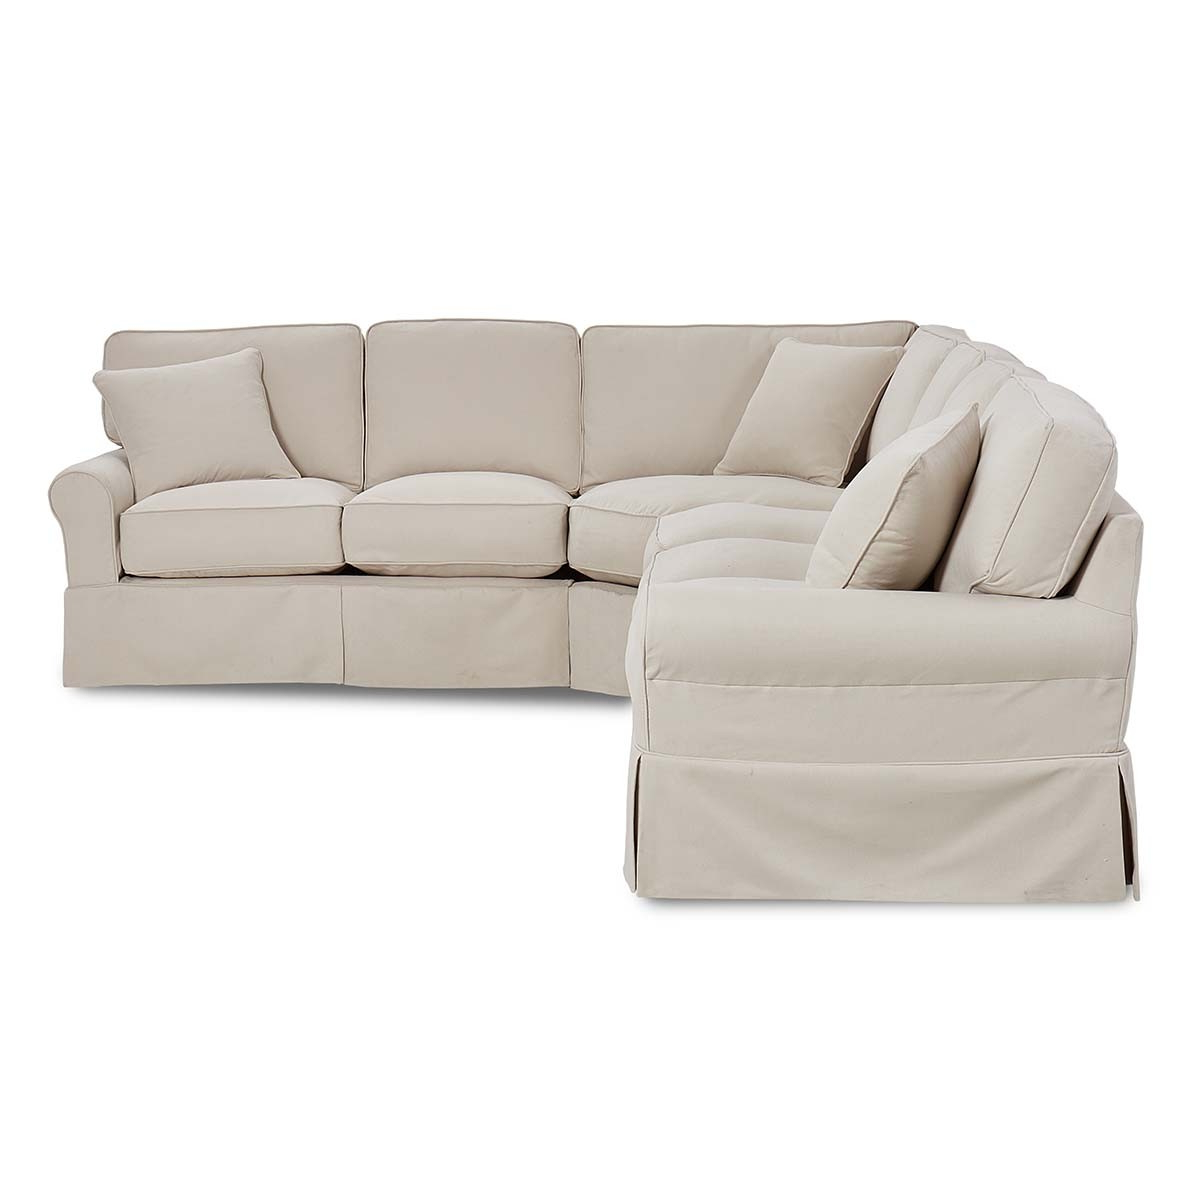 Knightsbridge Sectional Intended For 2019 Turdur 3 Piece Sectionals With Laf Loveseat (View 5 of 20)